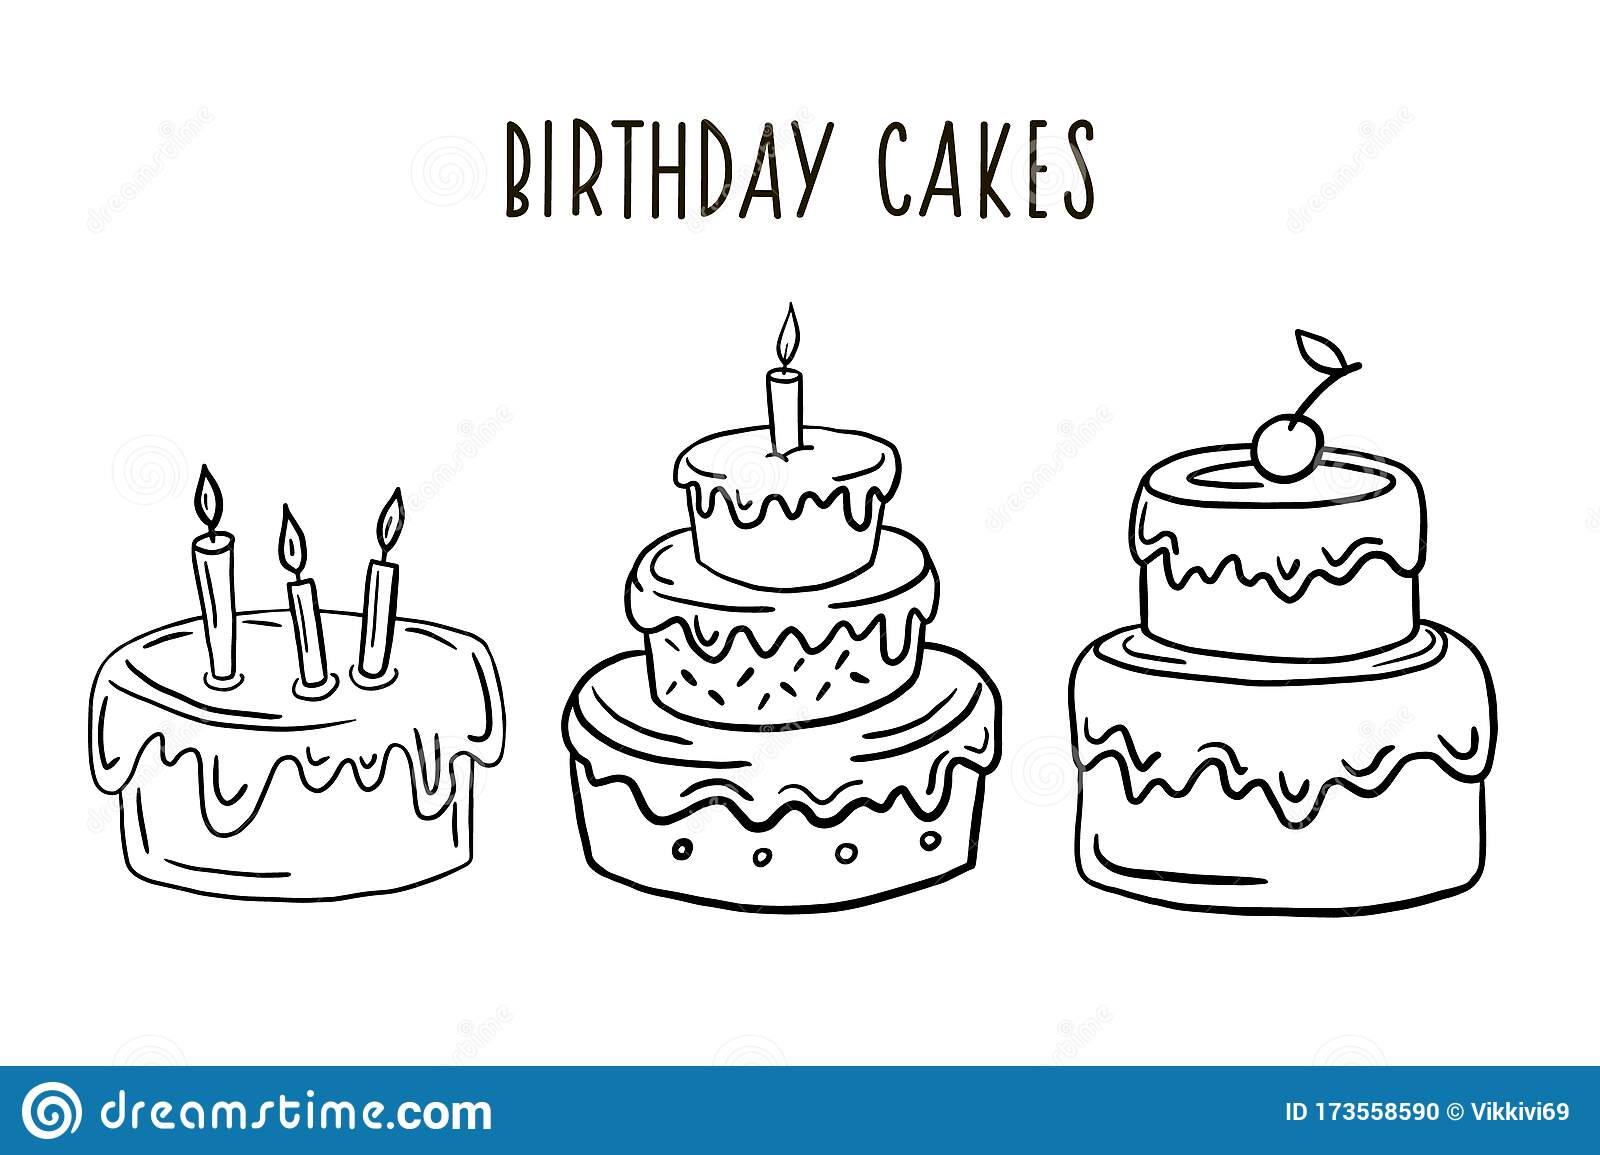 Awe Inspiring A Set Of Birthday Cakes Vector Drawing In A Linear Style Cake Birthday Cards Printable Benkemecafe Filternl